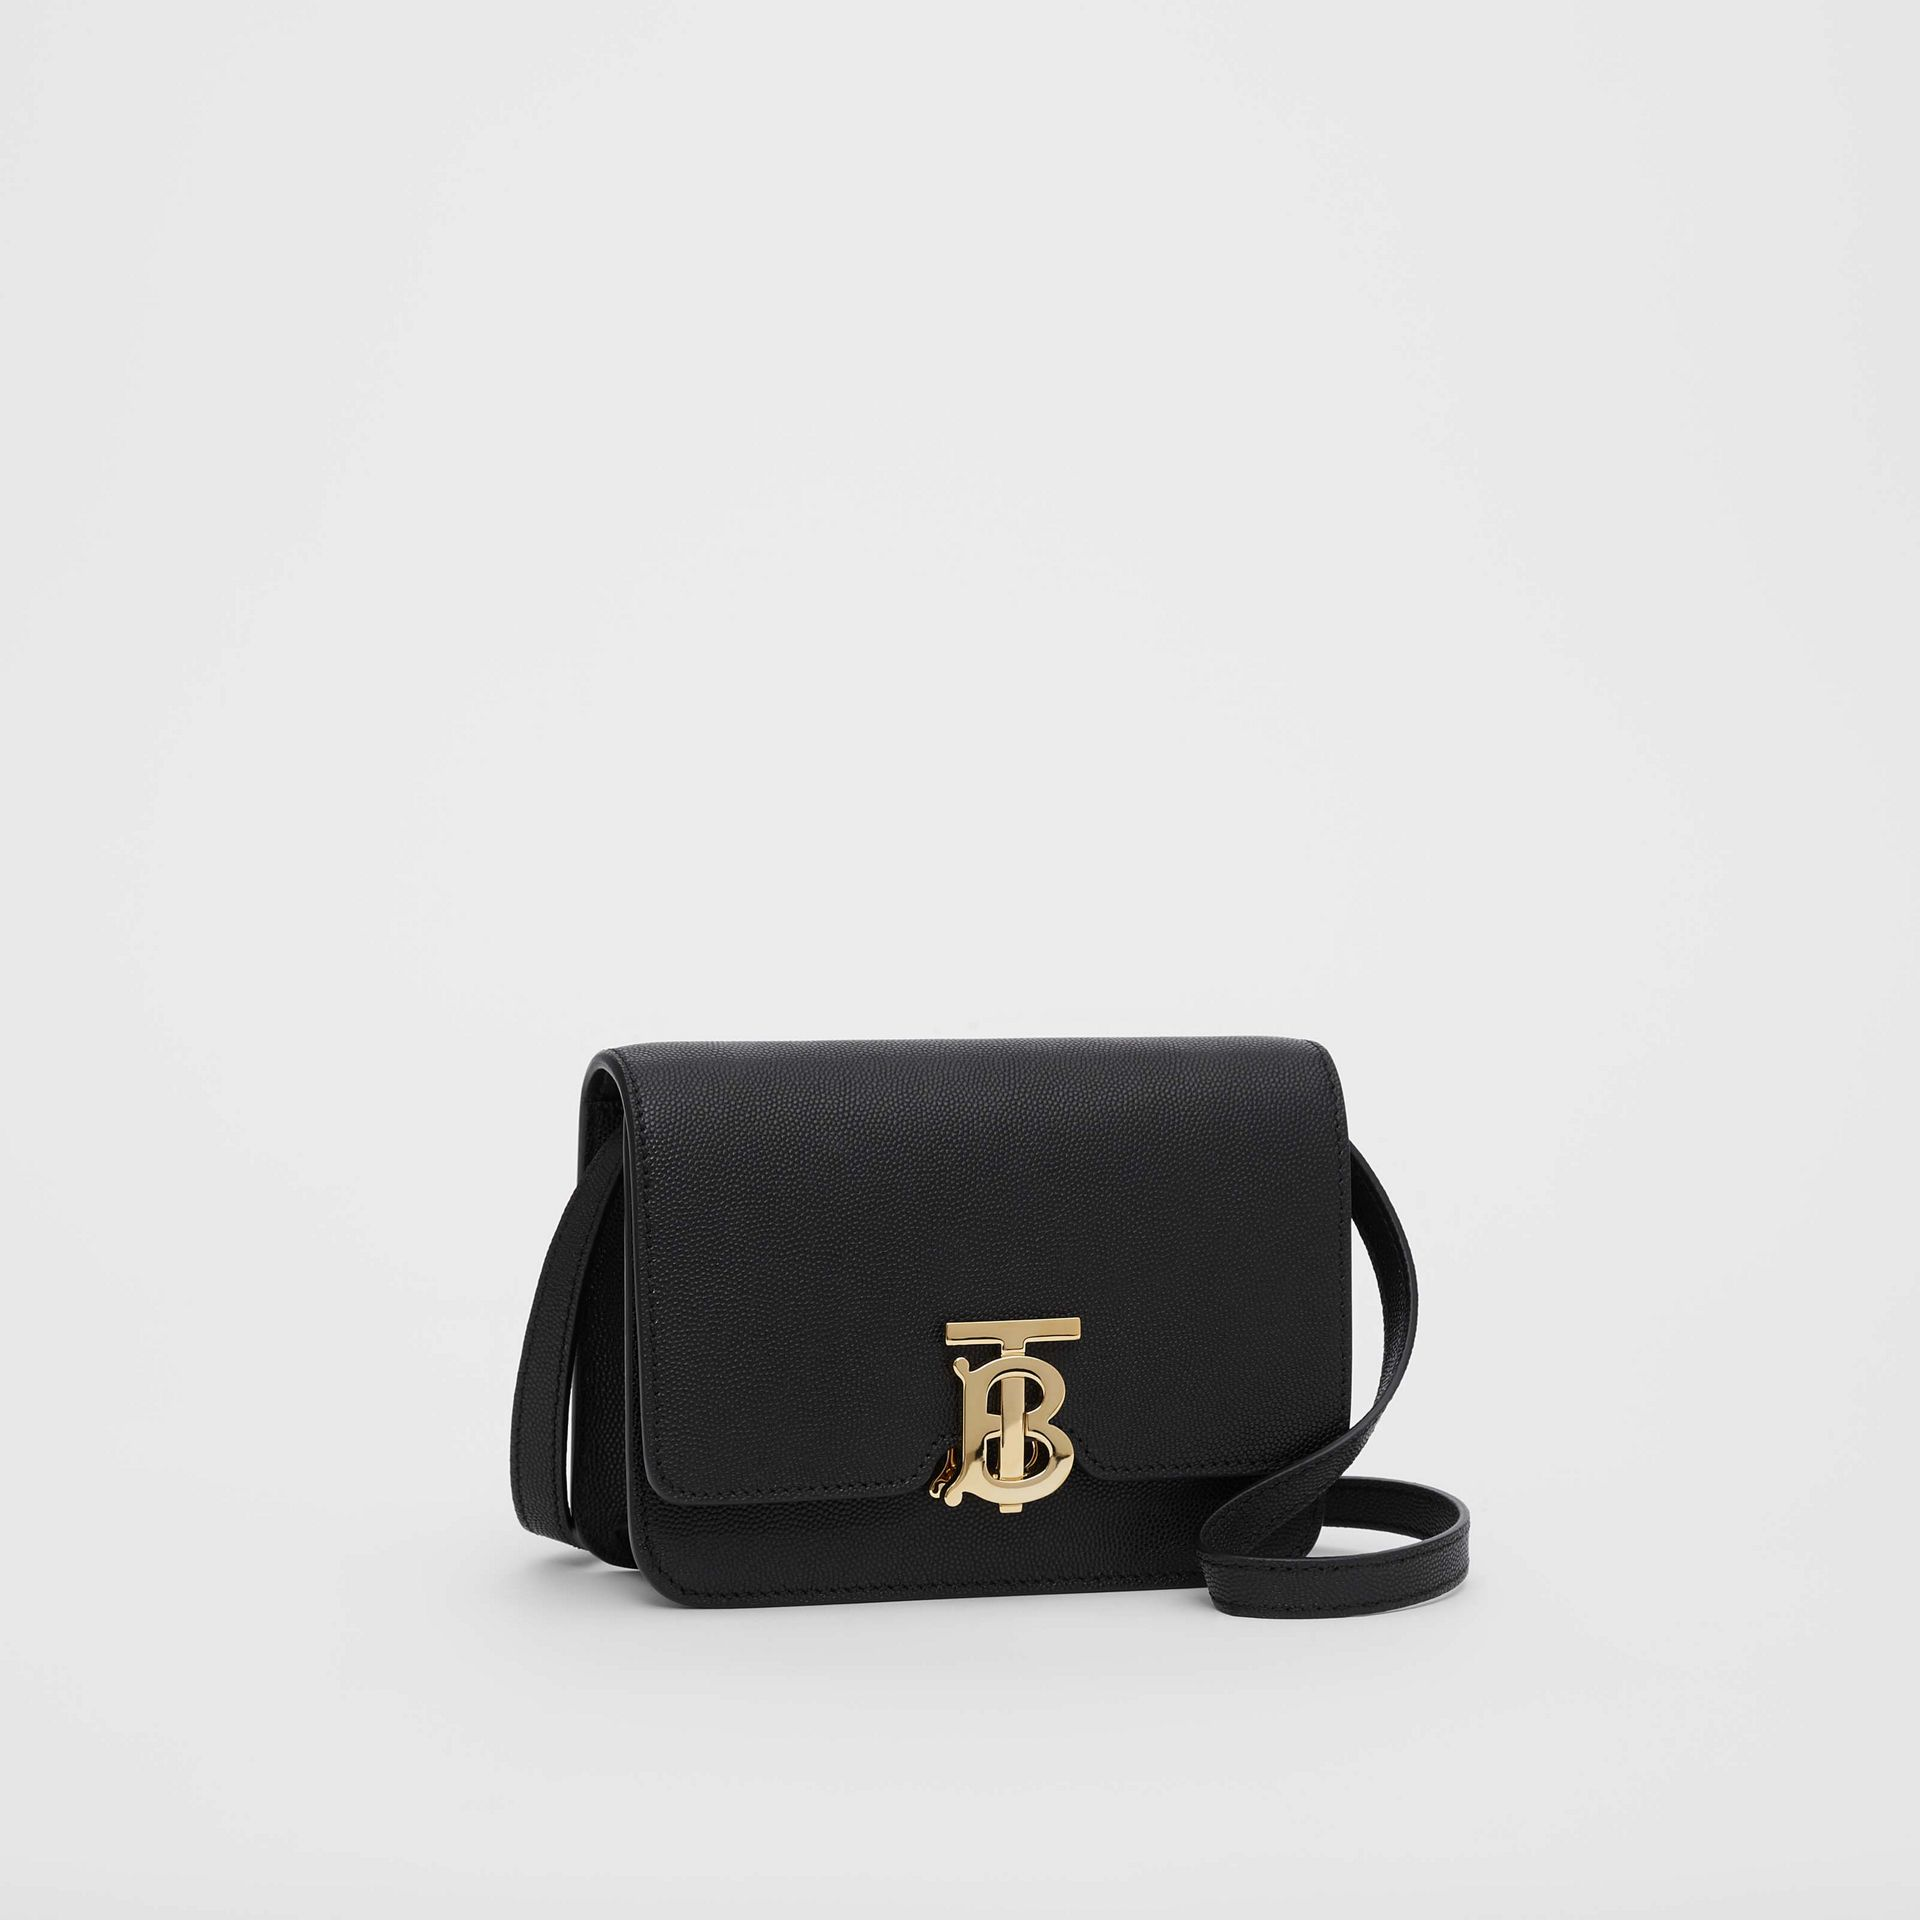 Mini Grainy Leather TB Bag in Black - Women | Burberry Singapore - gallery image 6